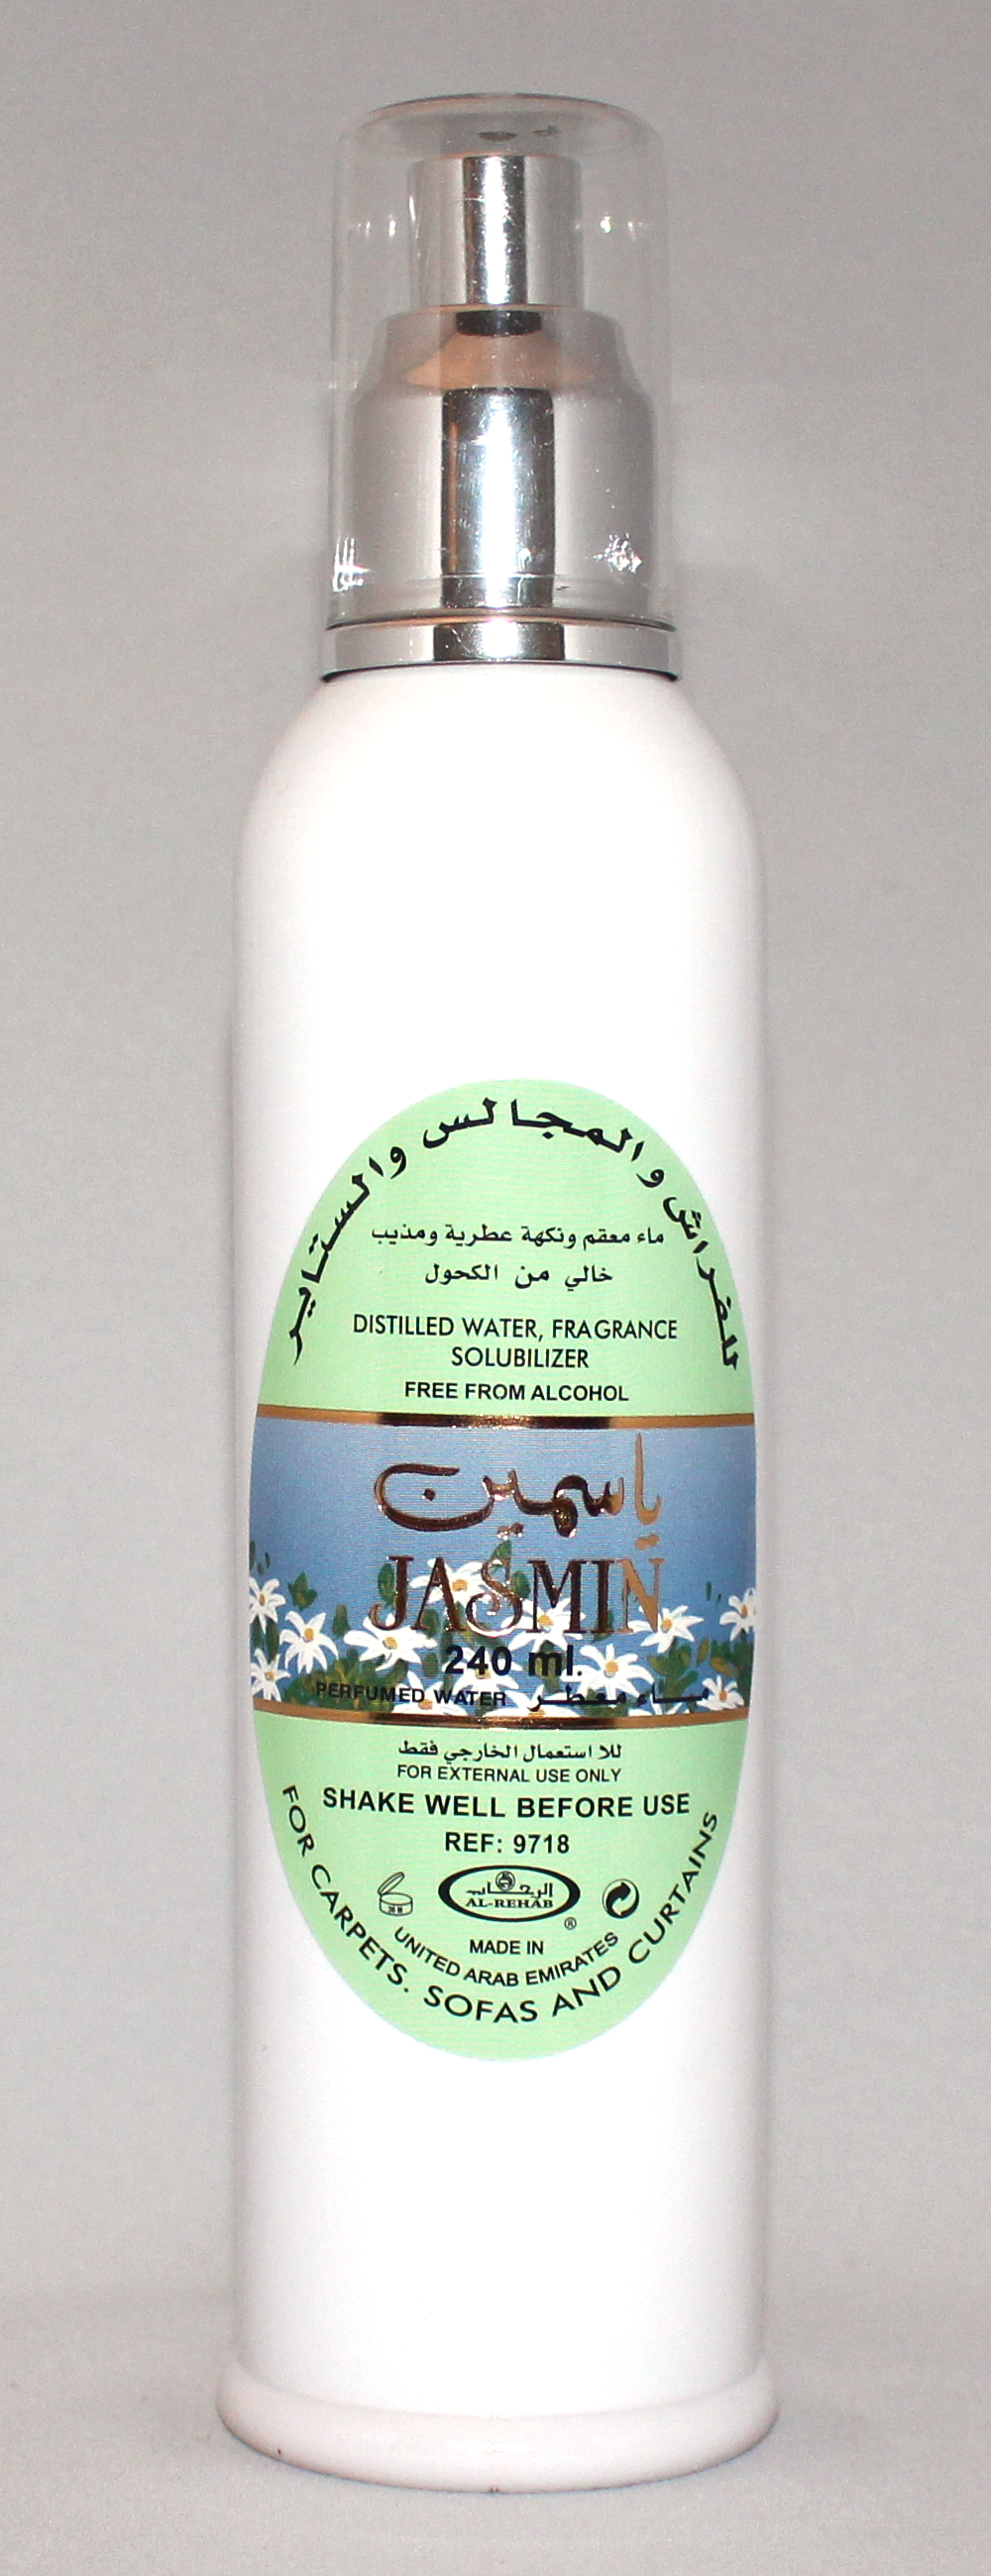 Jasmin Room Freshener by Al-Rehab (240 ml)